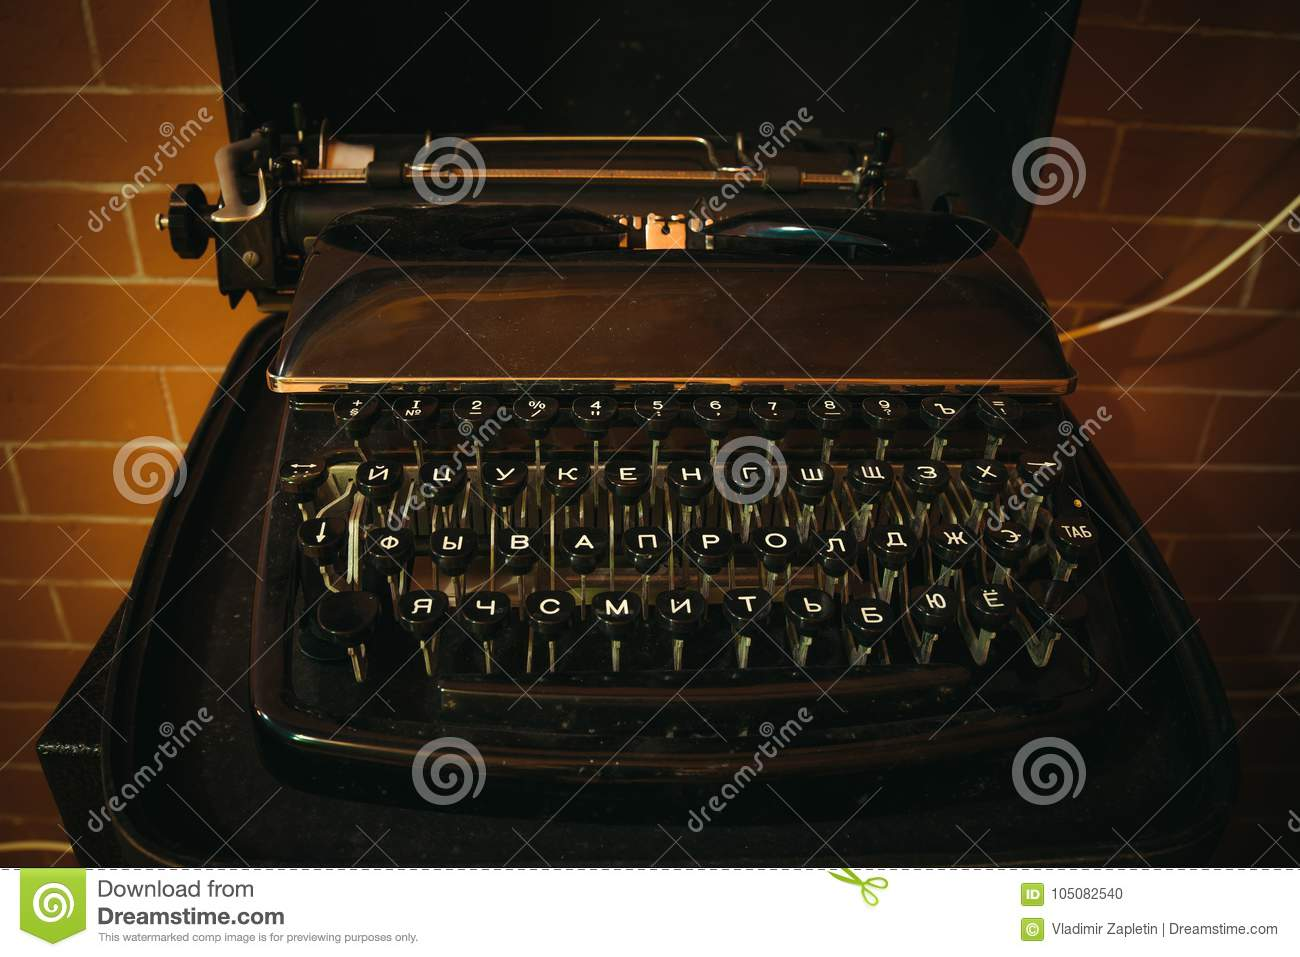 8b3e100a38a Old Vintage Typewriter With Russian Keys Stock Photo - Image of memo ...